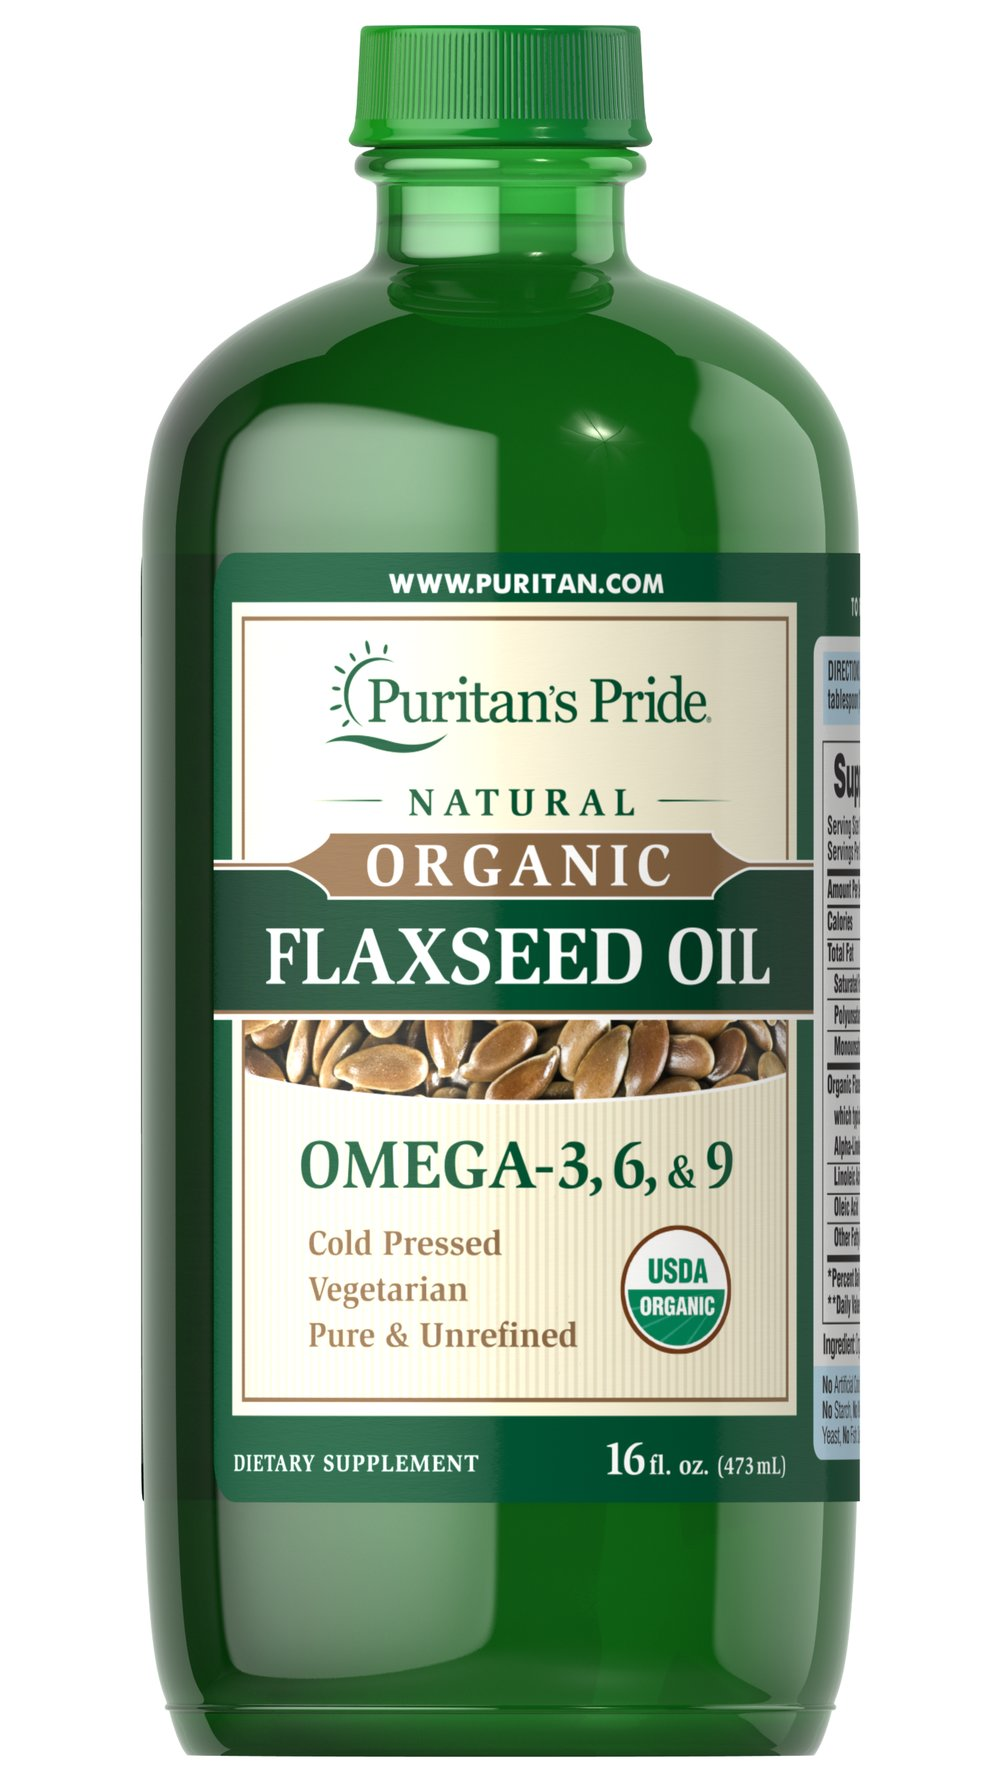 Organic Flaxseed Oil <p>Only a handful of natural sources contain the important <strong>Omega-3, -6 and -9 fatty acids</strong> your body needs for heart, metabolic and cellular health.**</p><p>Our Flaxseed Oil is derived from the seeds of the Flax plant and is a terrific plant source of these important polyunsaturated fatty acids. To ensure the highest possible quality, flaxseeds are processed in a climate- and light-controlled atmosphere. They are pressed at very